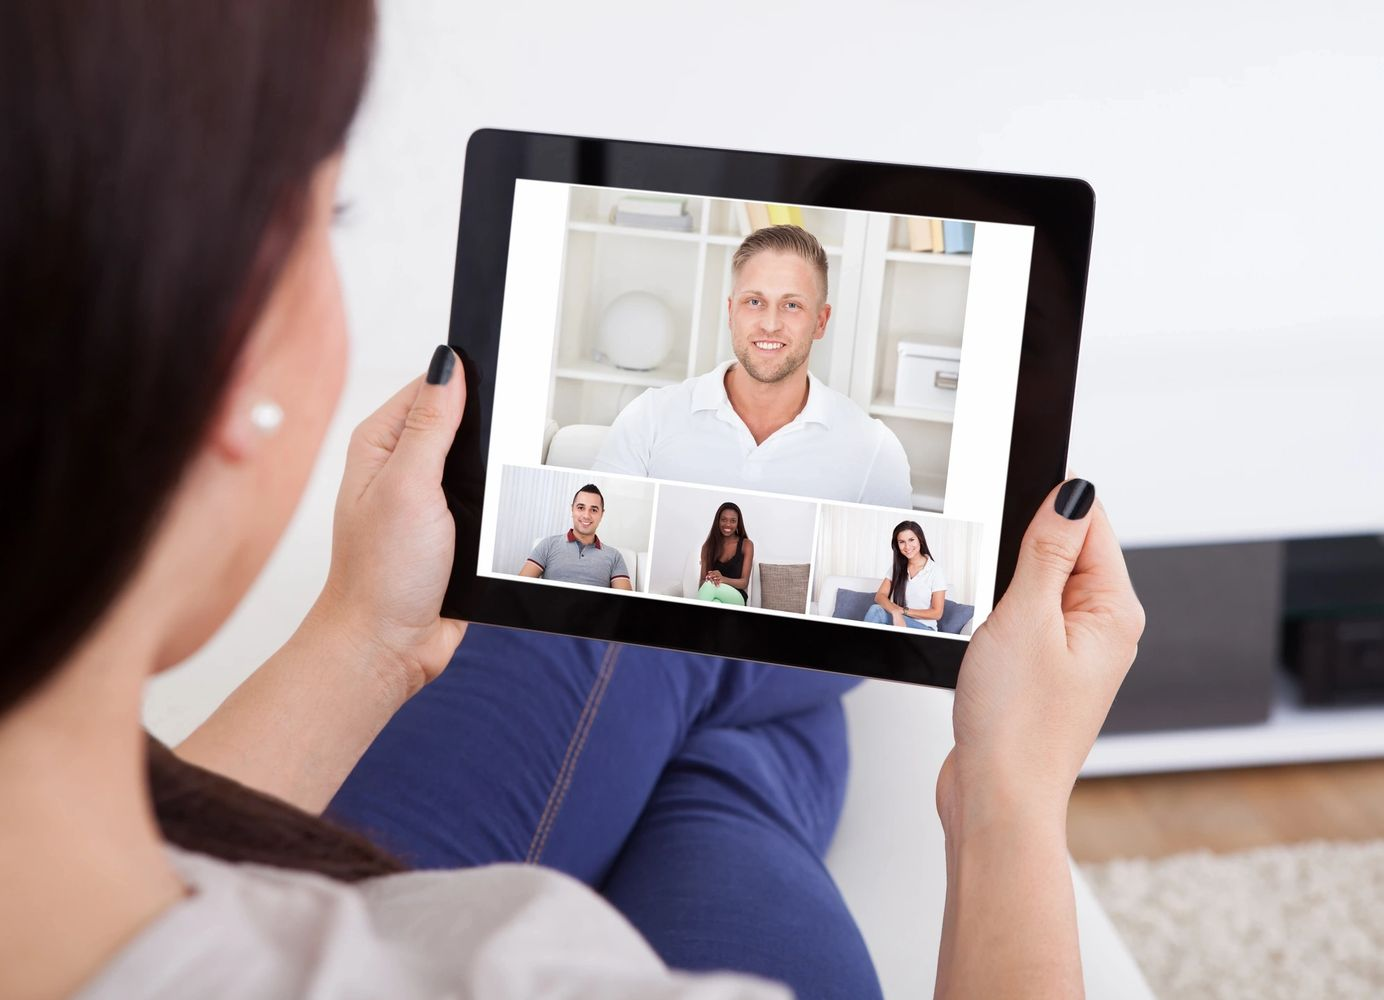 Virtual conferencing e-mediation